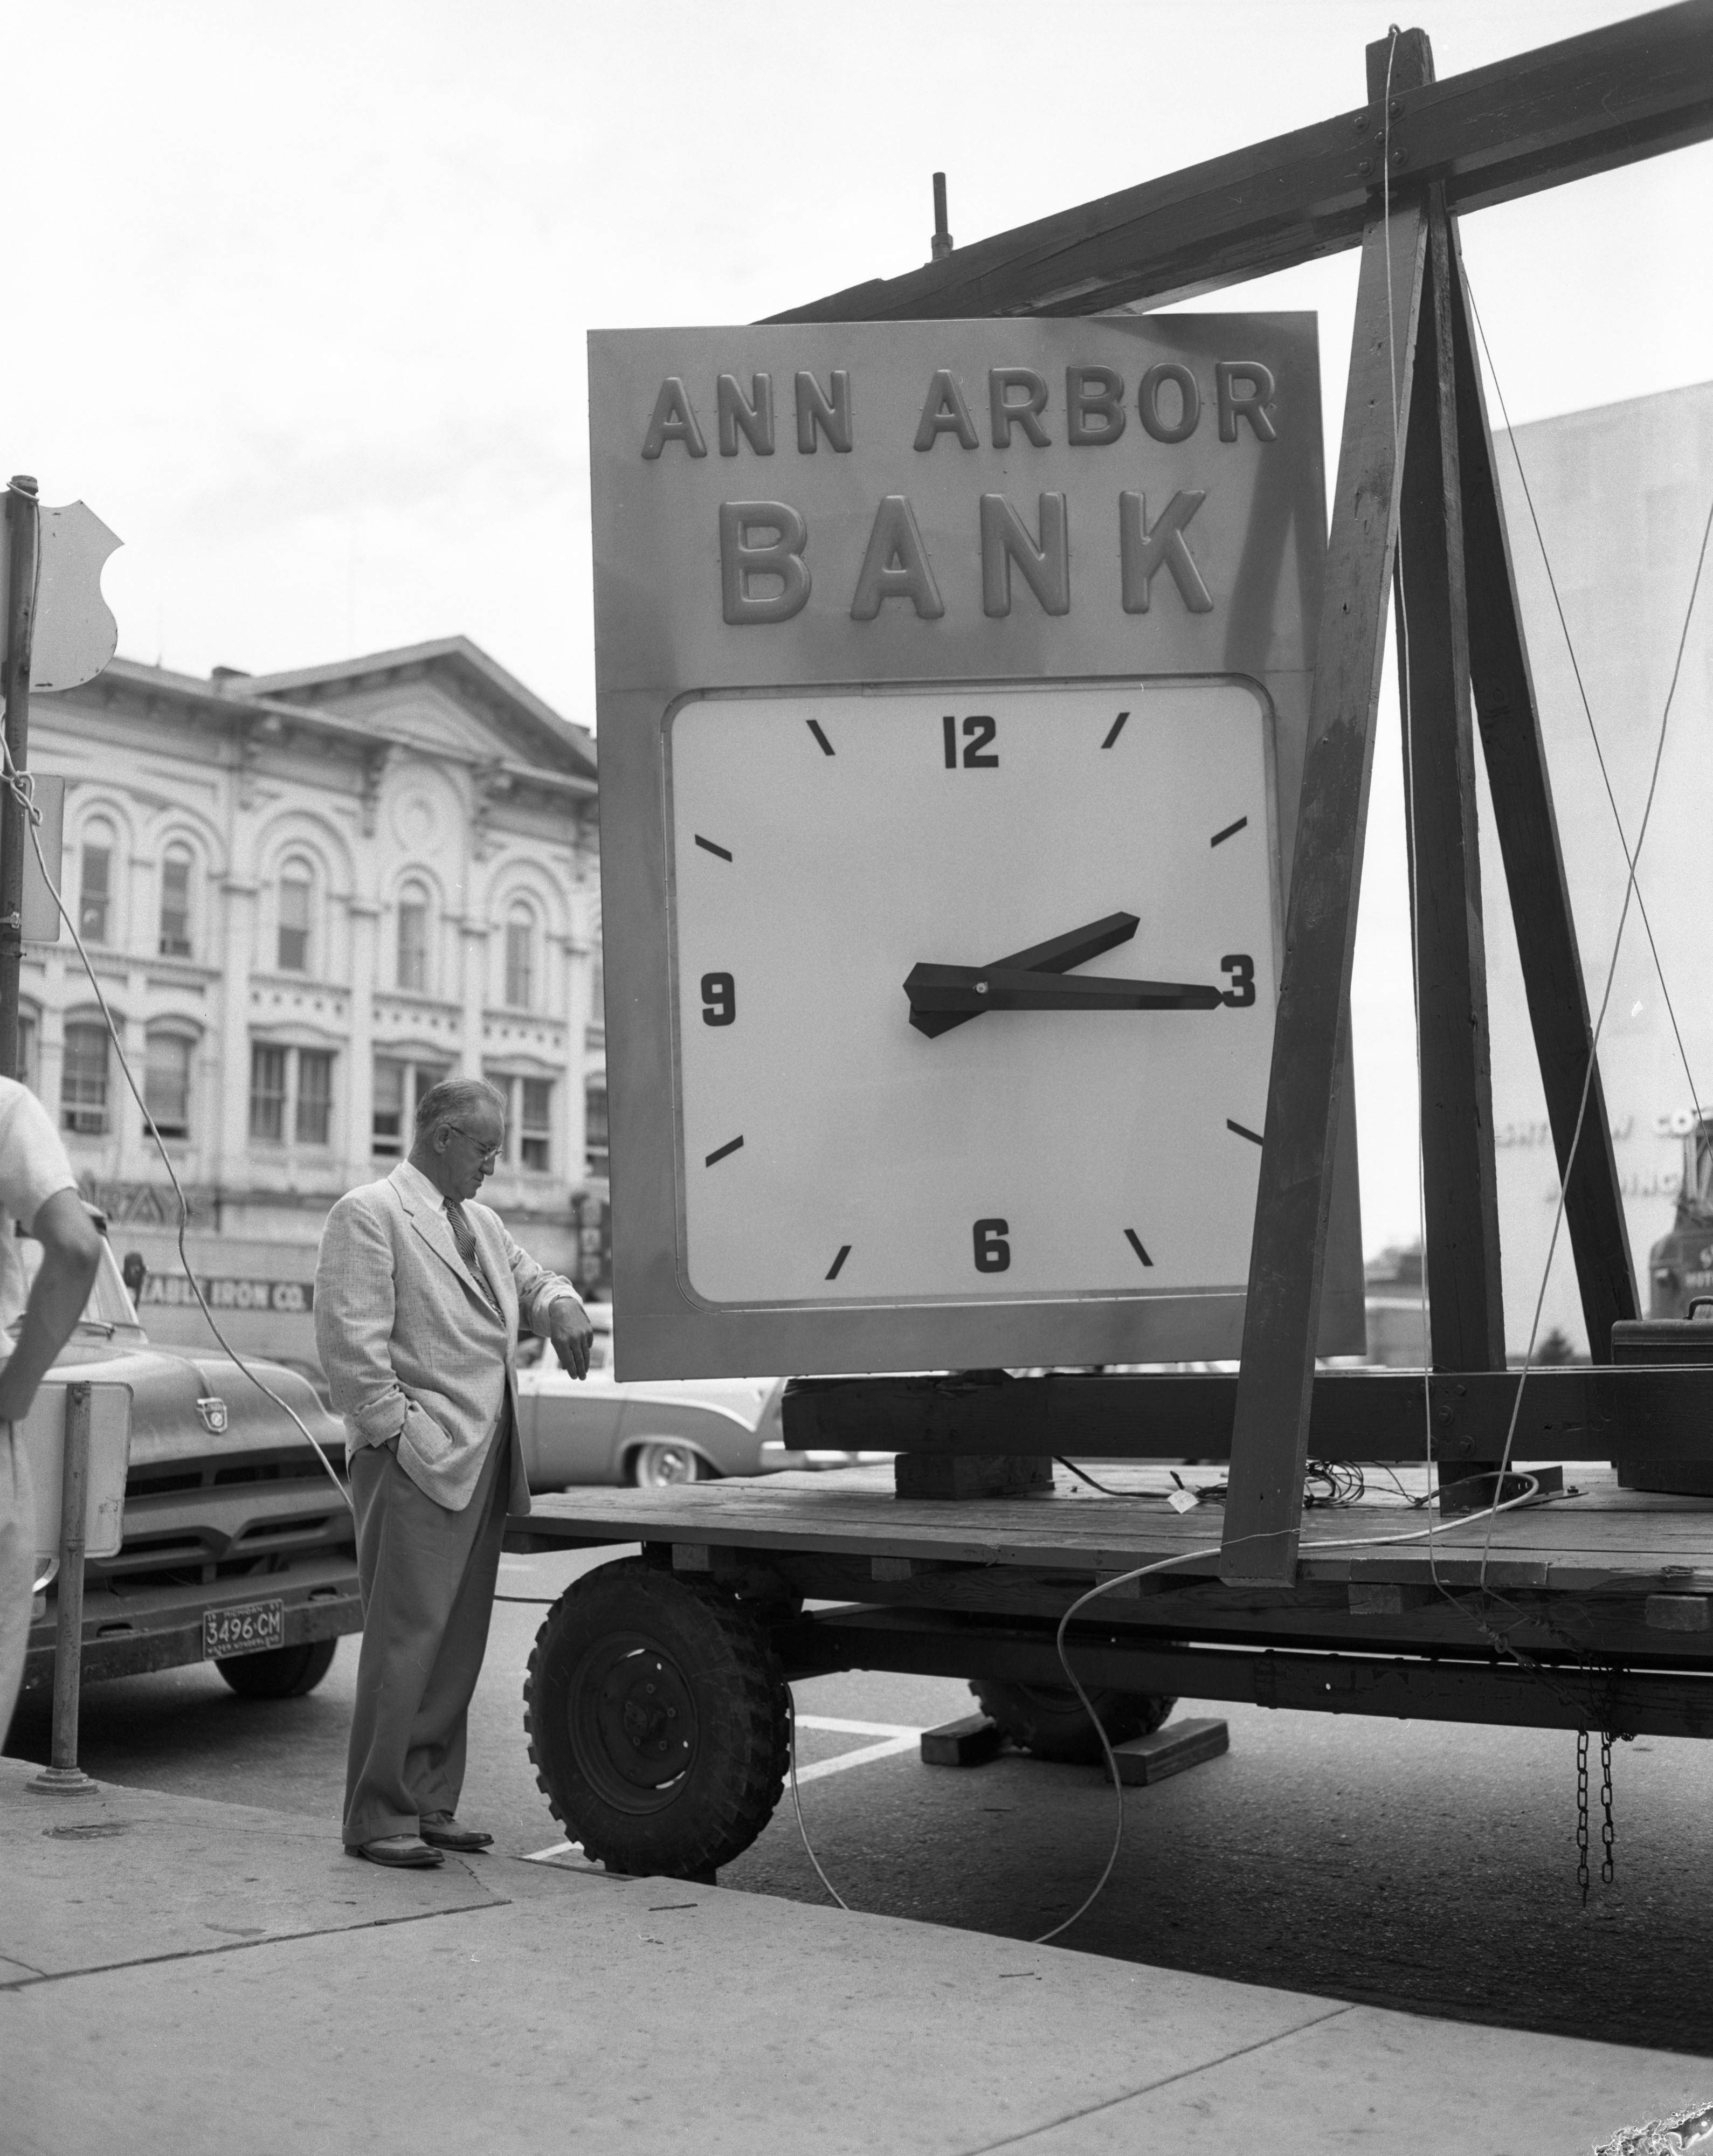 Ann Arbor Bank installs a big clock, July 1957 image